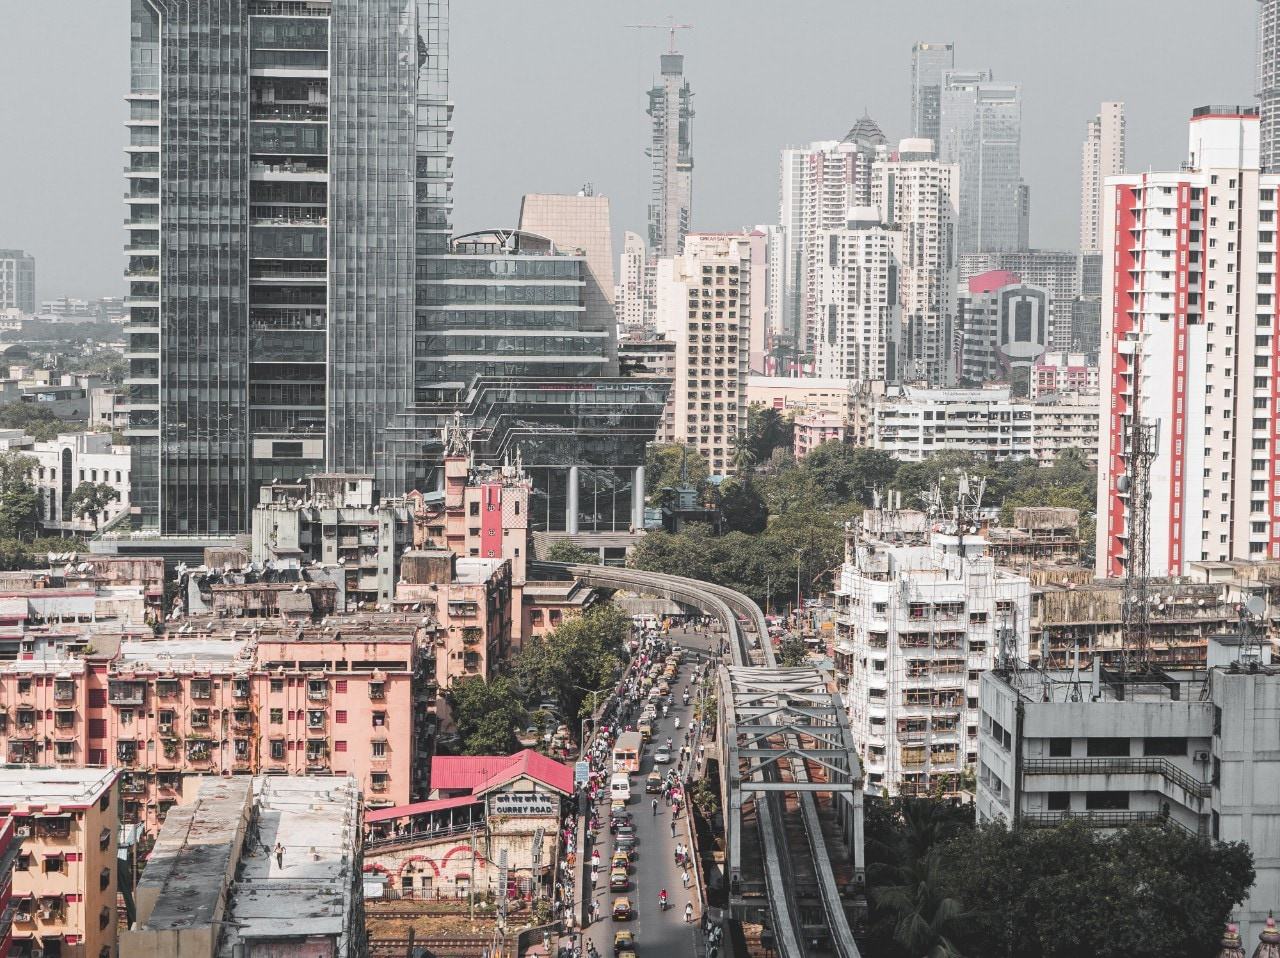 View of Mumbai cityscape